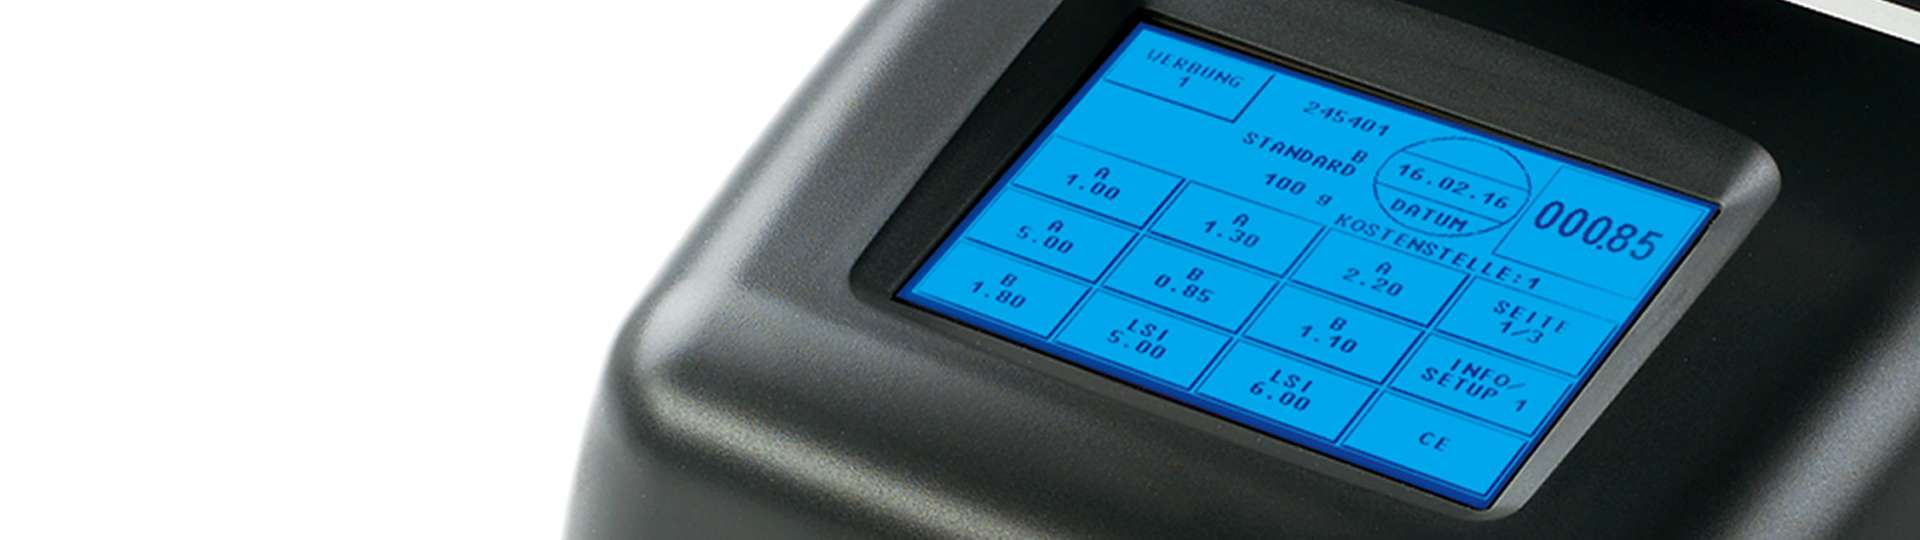 The OfficeMail is operated by touchscreen. Intuitive ComTouch interface for a better performance.